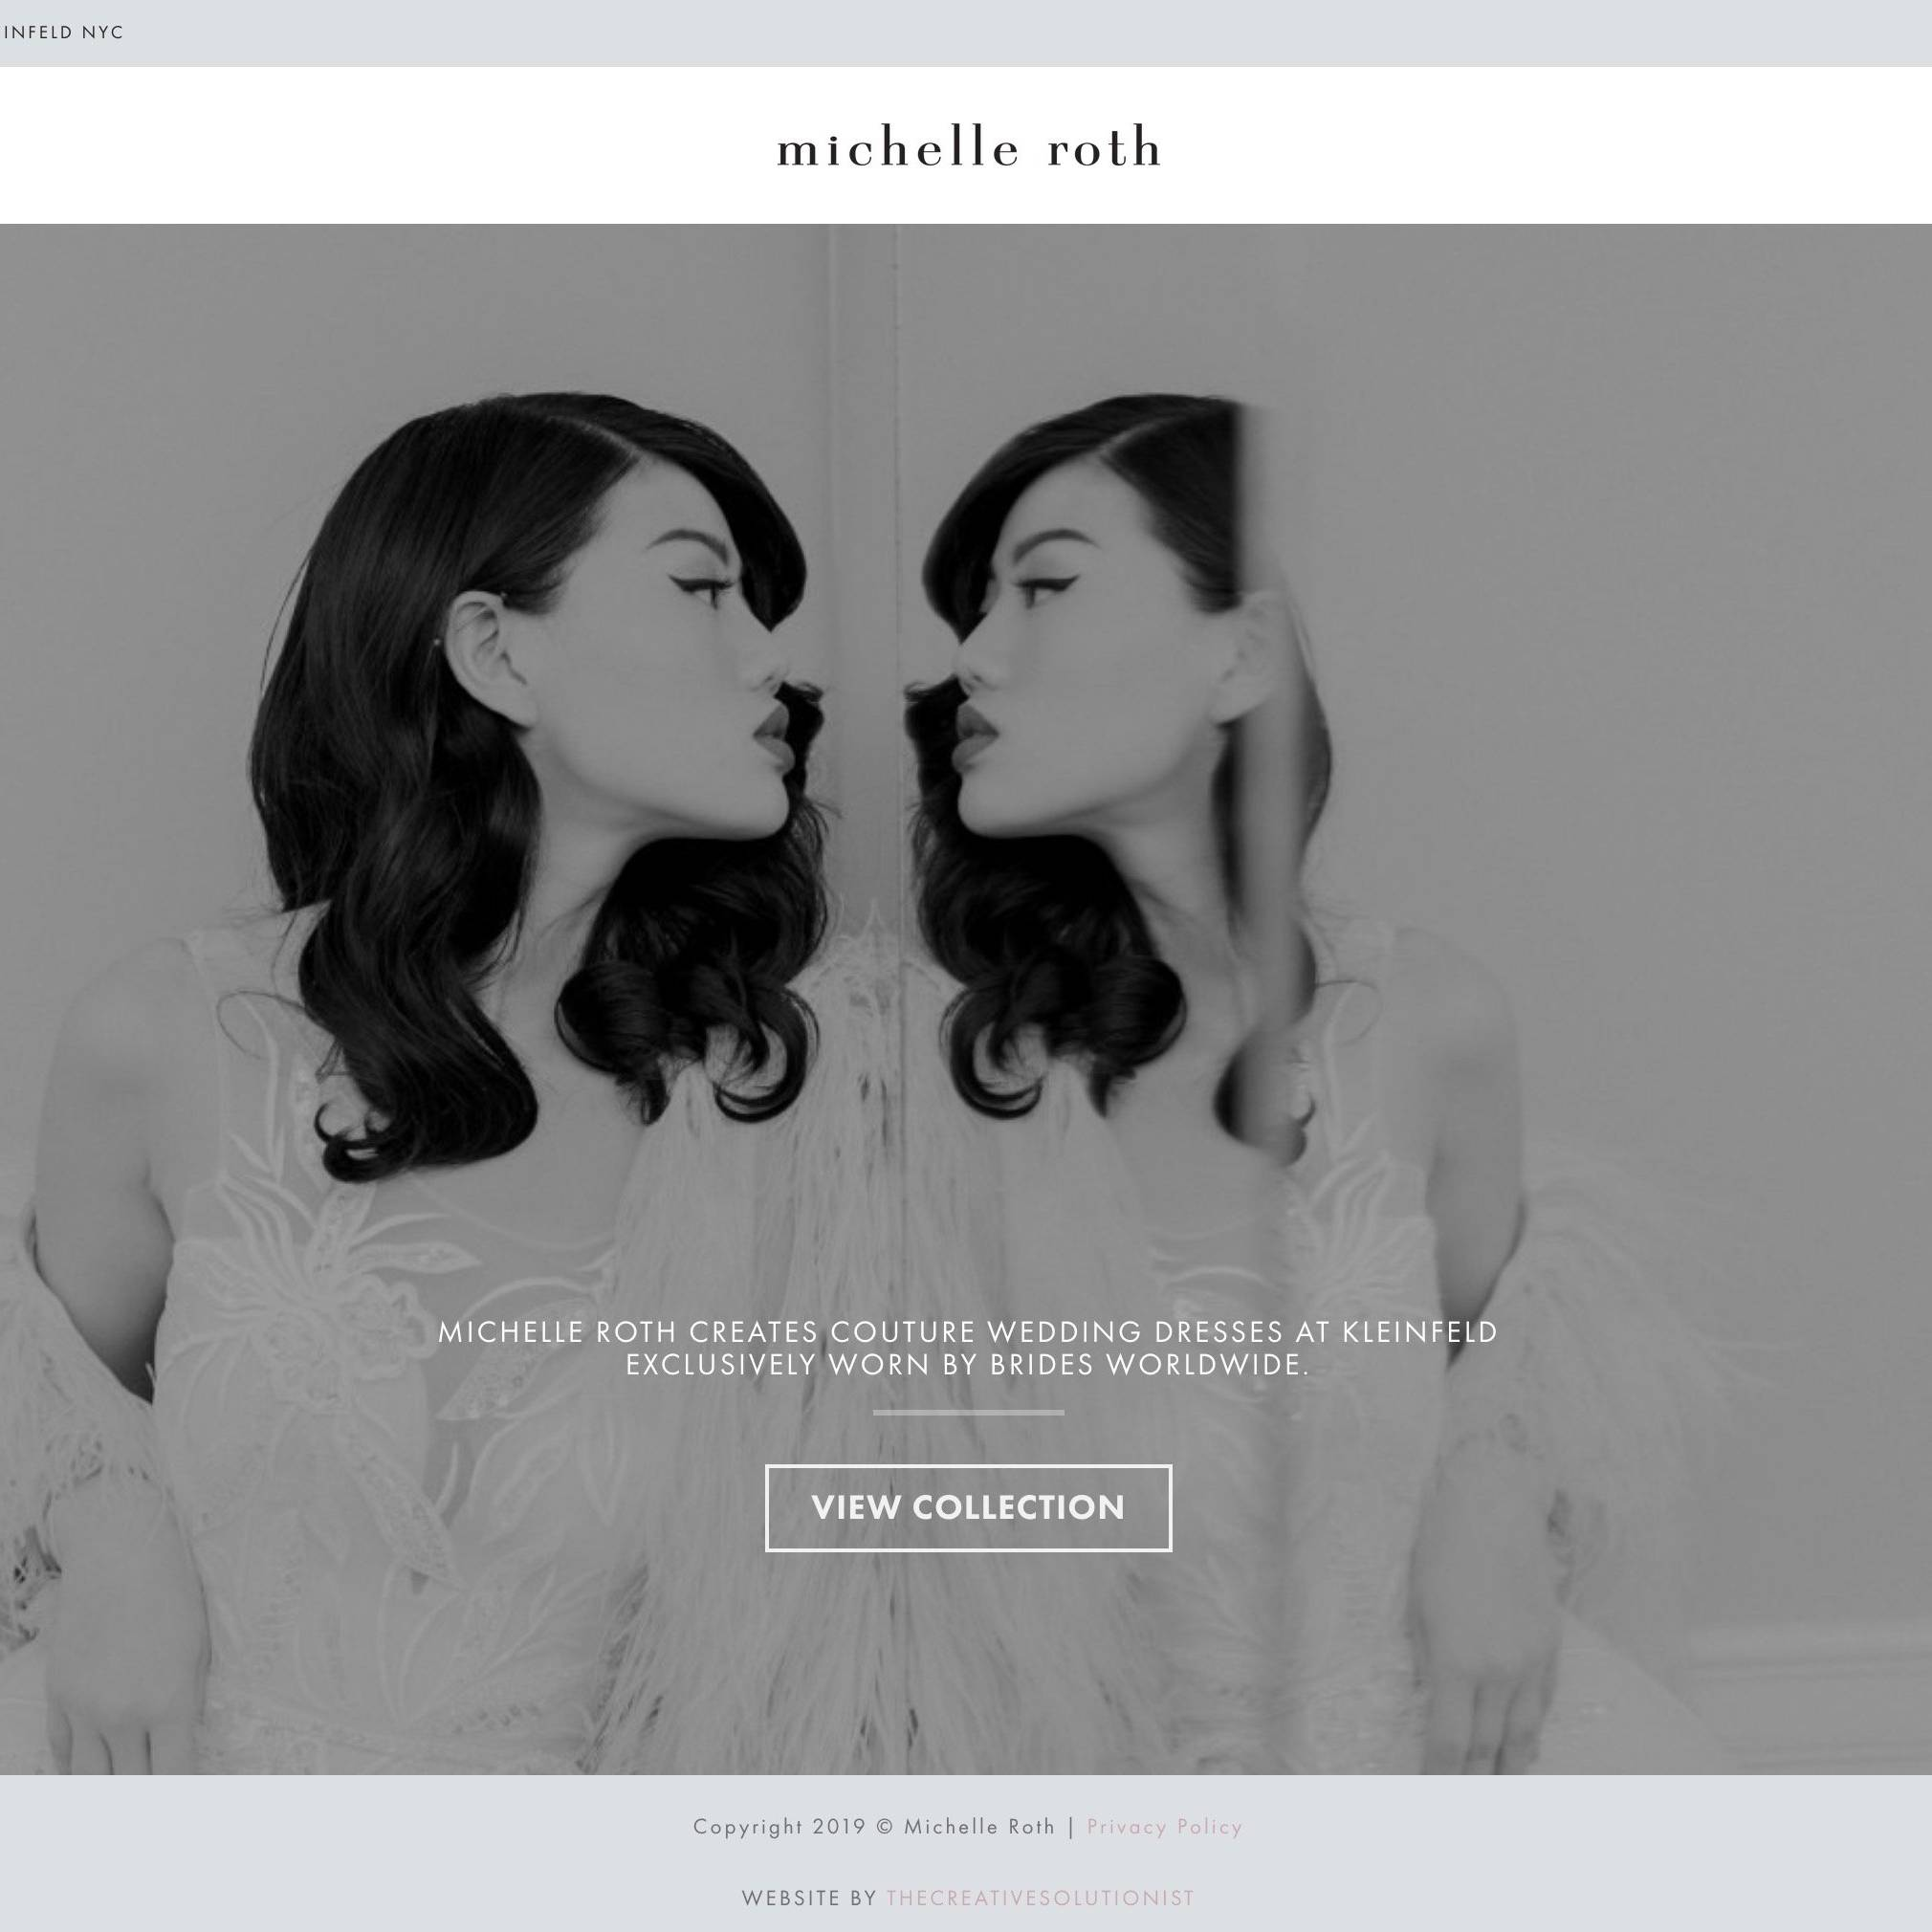 Michelle Roth Bridal Site By The Creative Solutionist